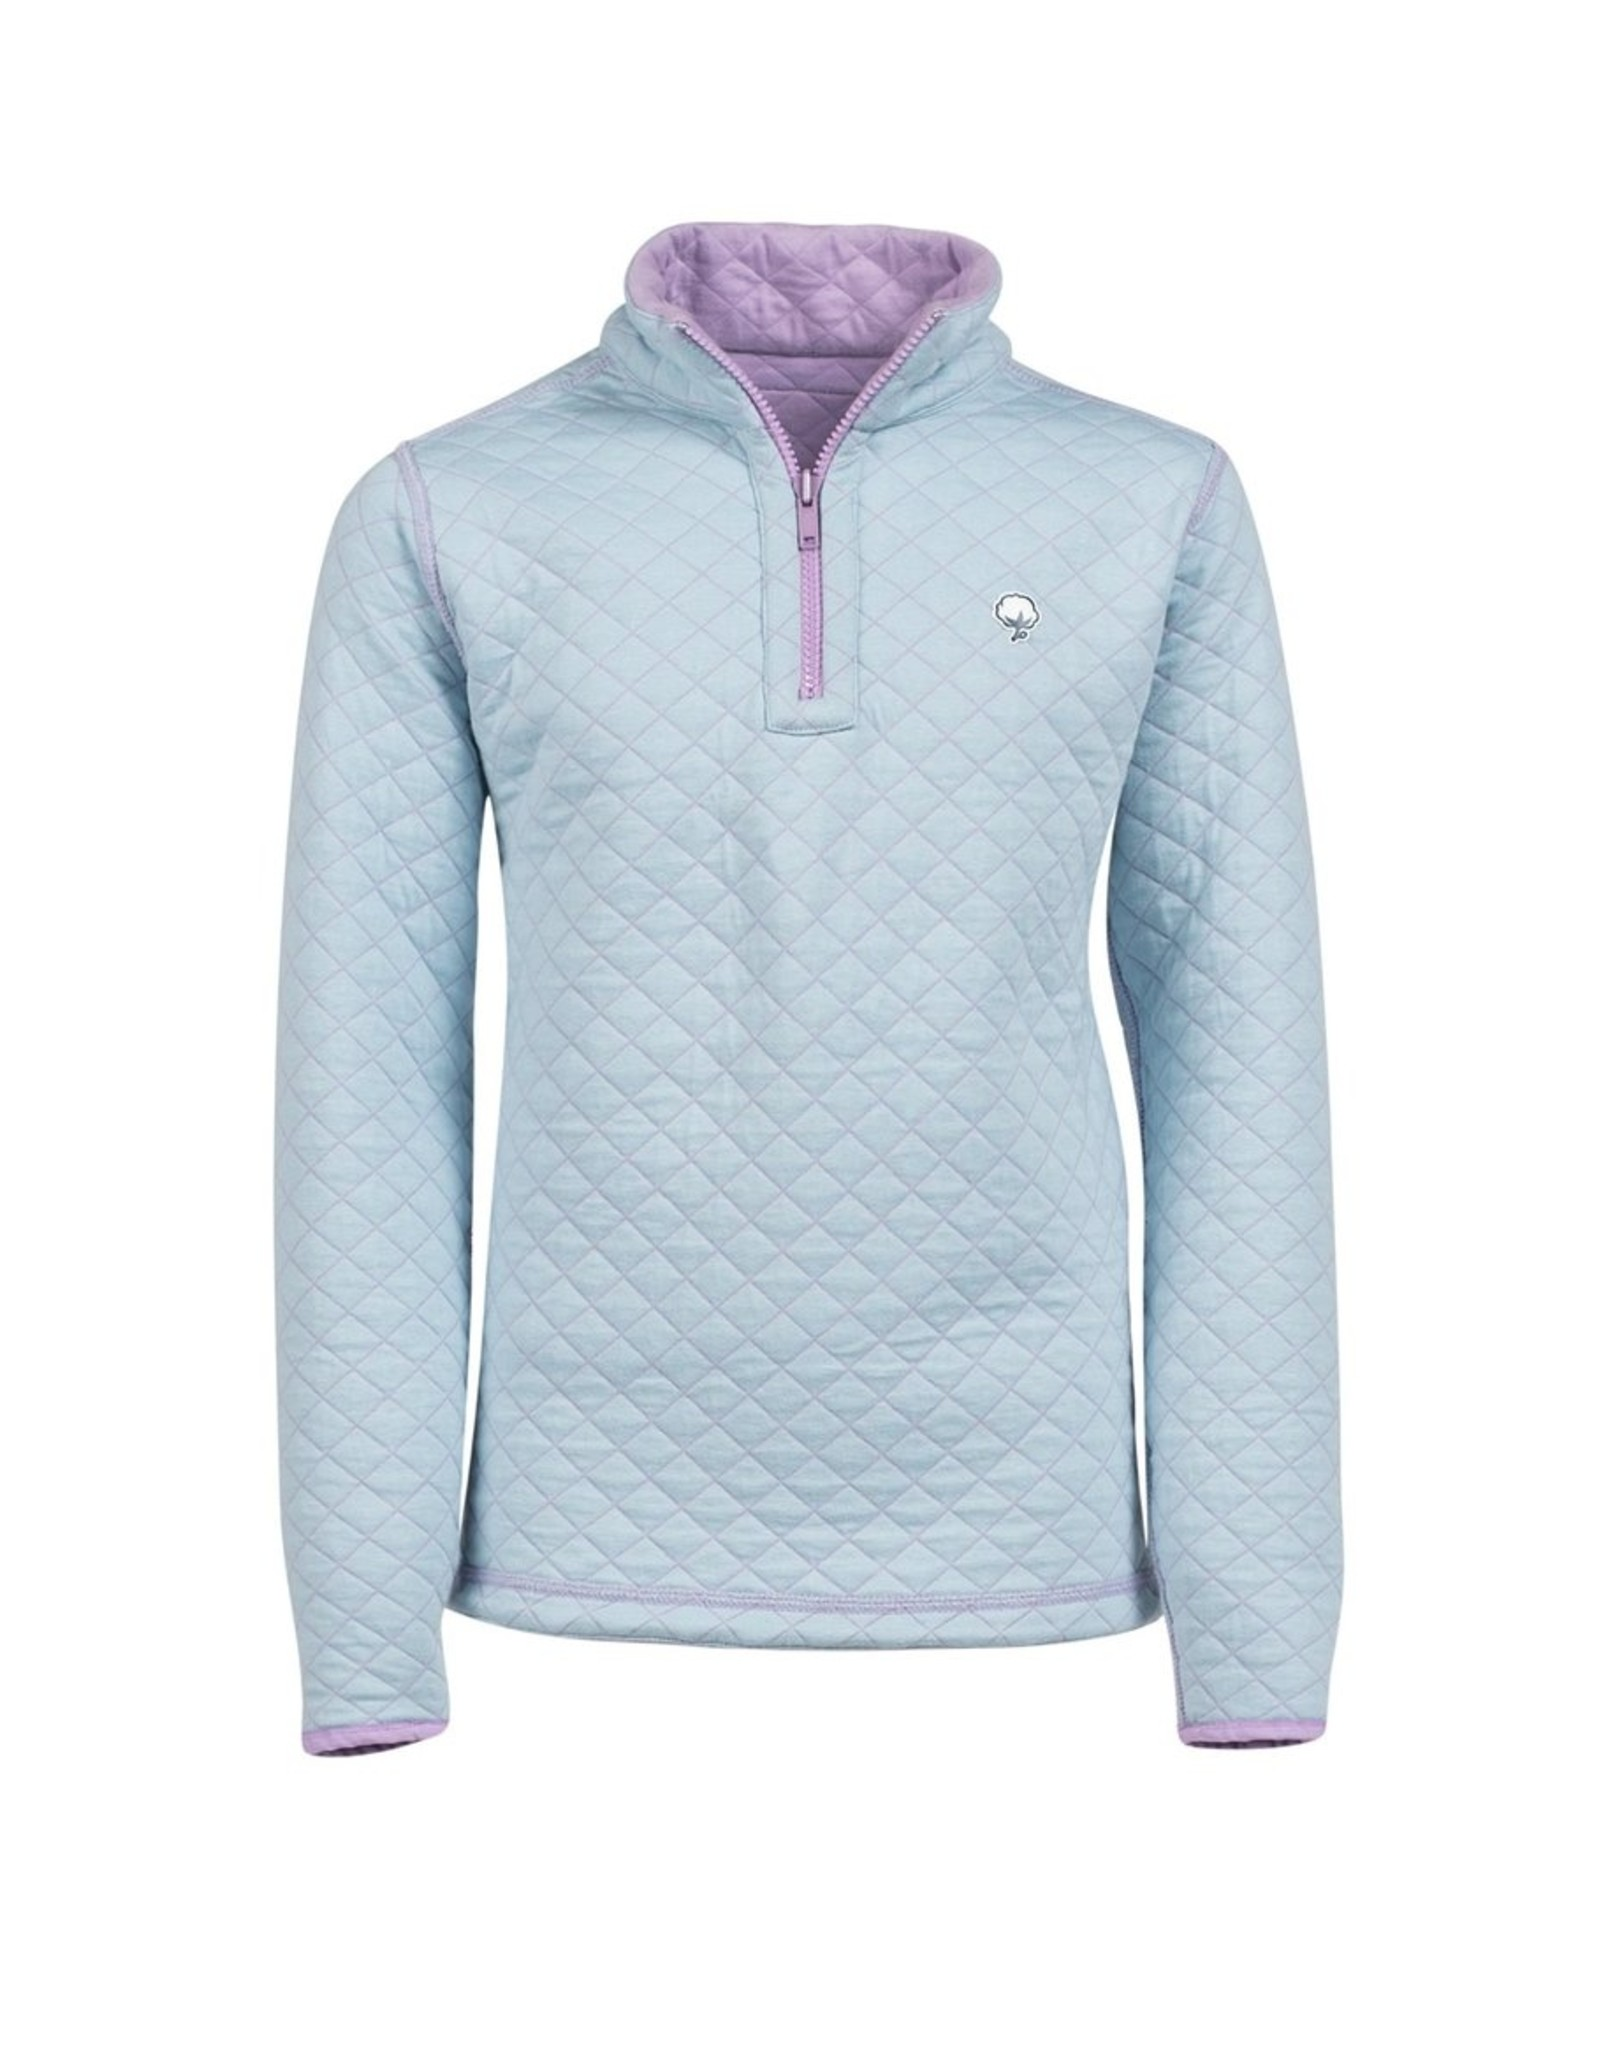 Southern Shirt Girls Adventure Pullover/6V001